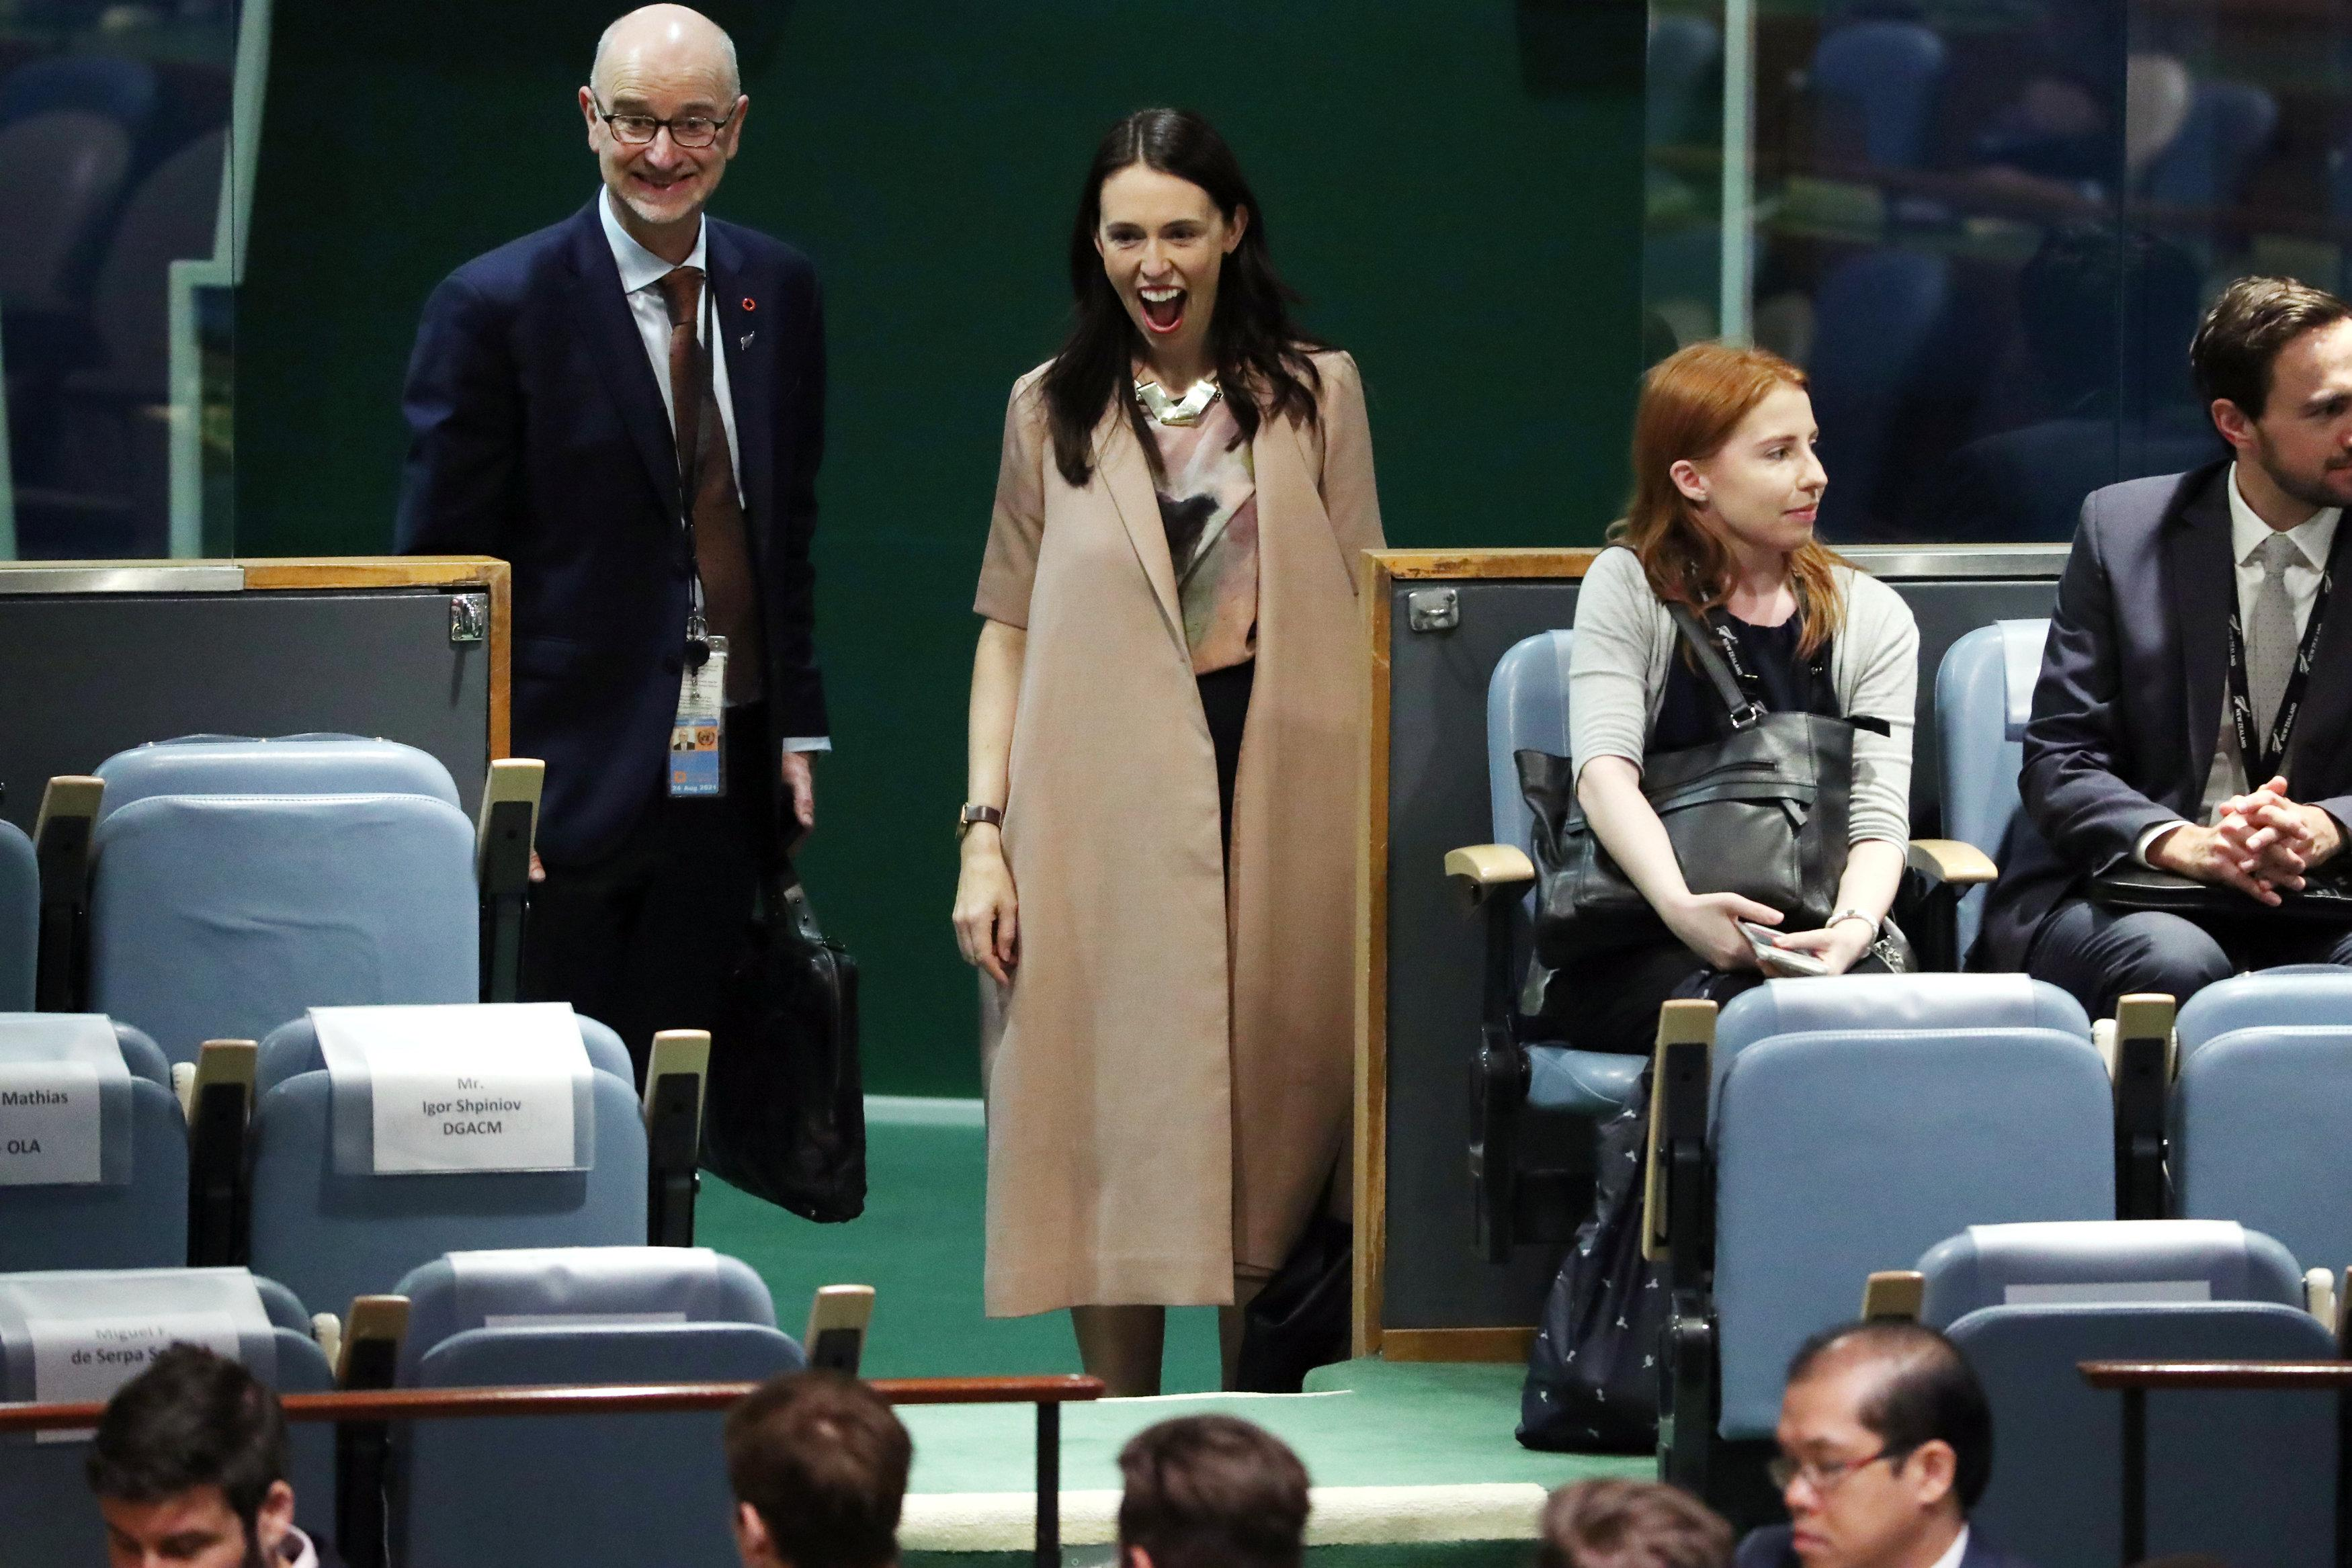 New Zealand Prime Minister Jacinda Ardern reacts as she sees her baby Neve at the Nelson Mandela Peace Summit during the 73rd United Nations General Assembly in New York, U.S., September 24, 2018. Carlo Allegri